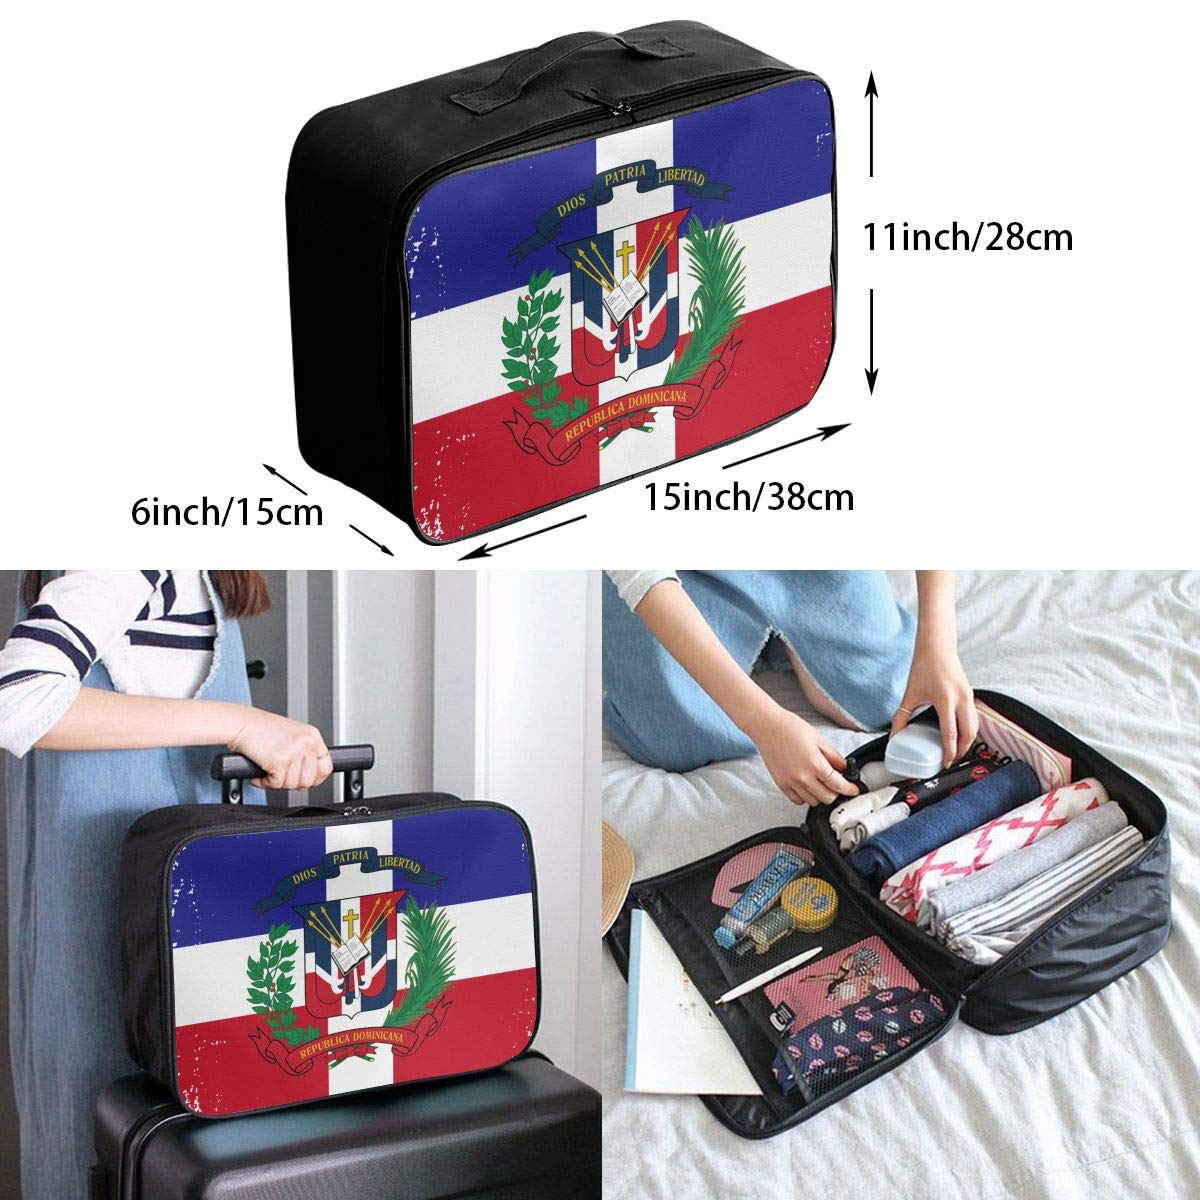 YueLJB Dominican Flag Grunge Lightweight Large Capacity Portable Luggage Bag Travel Duffel Bag Storage Carry Luggage Duffle Tote Bag